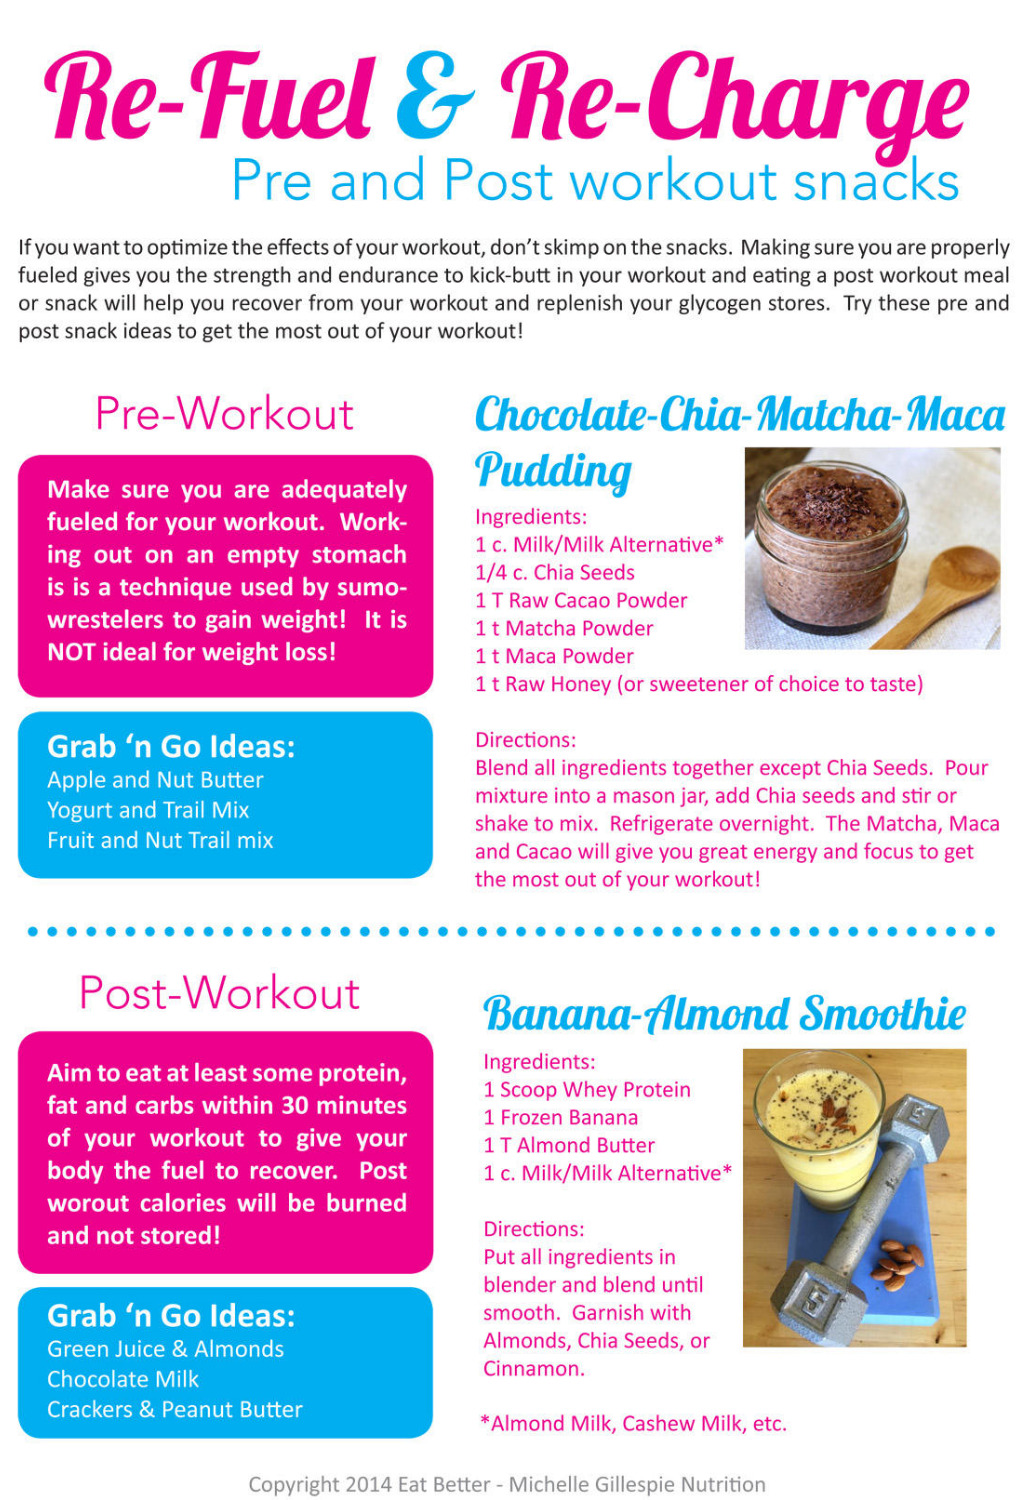 How to fuel your workout